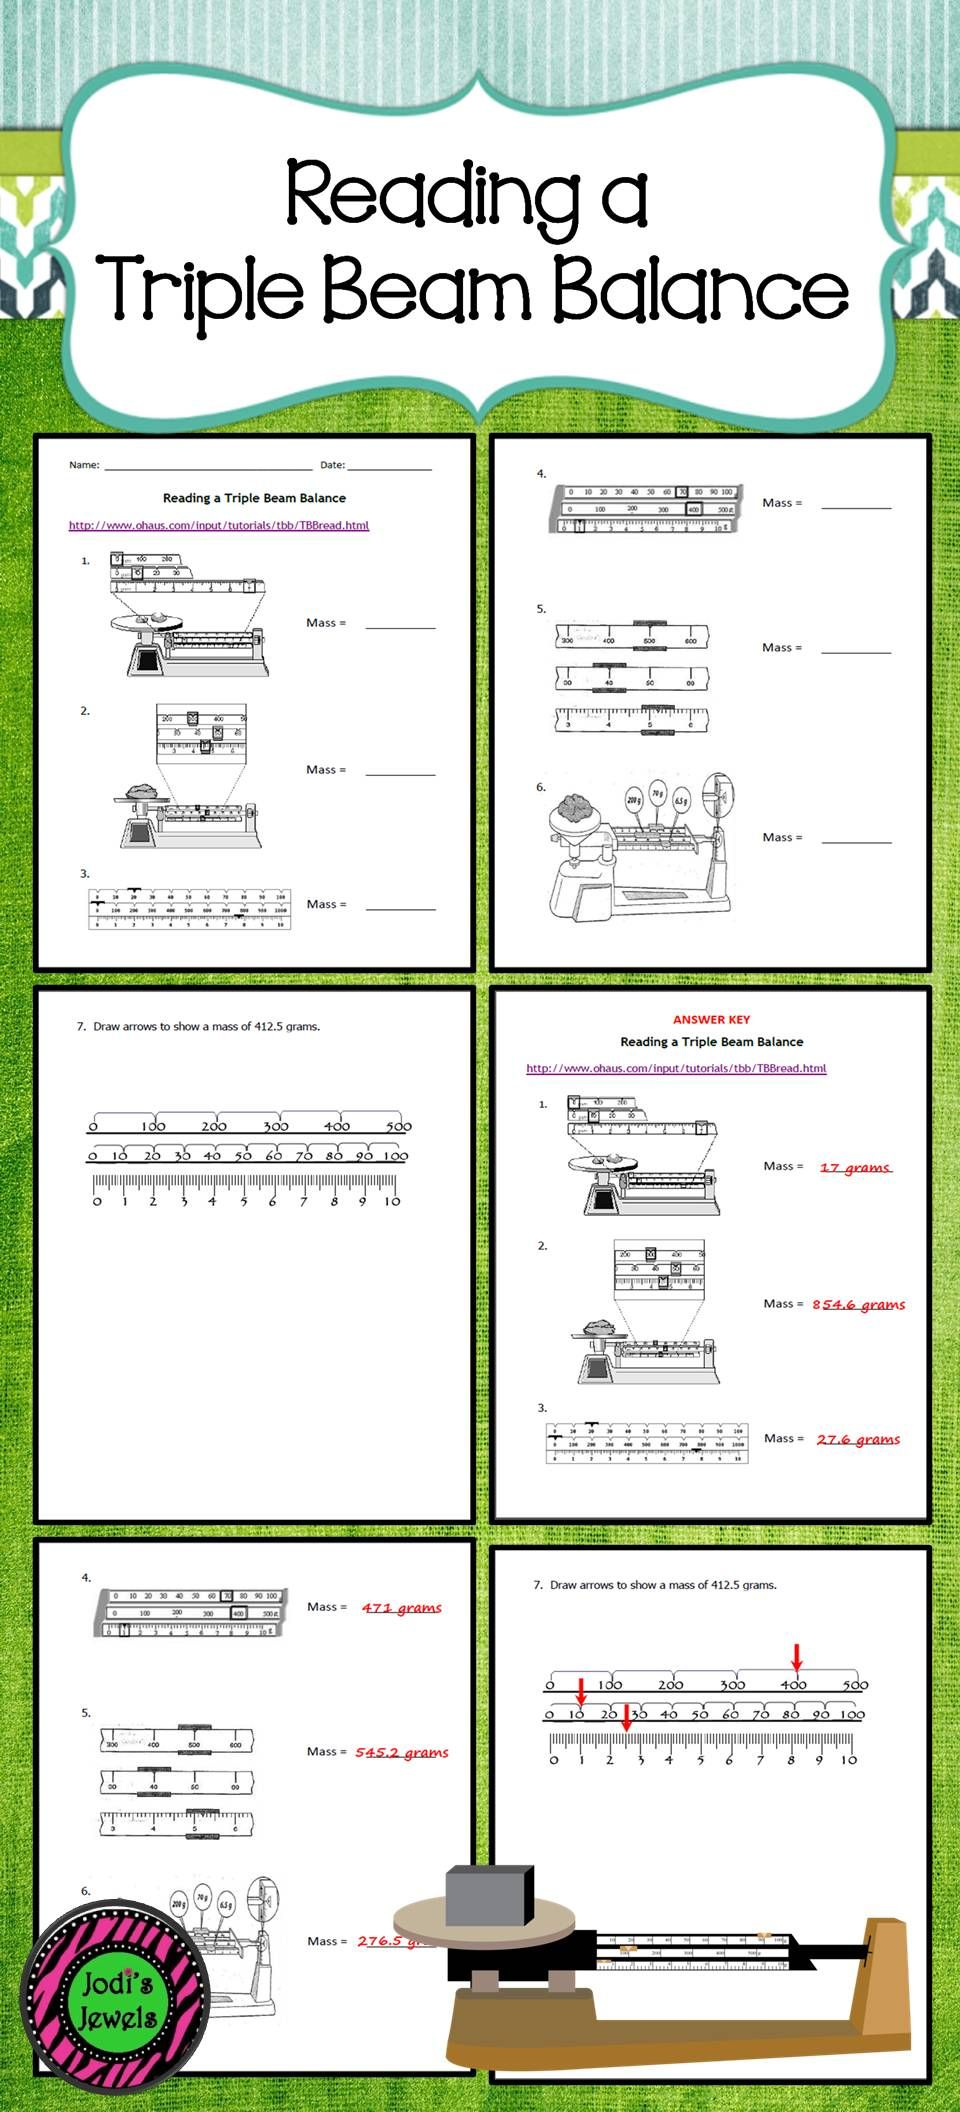 Reading A Triple Beam Balance Practices Worksheets Guided Practice Elementary School Science